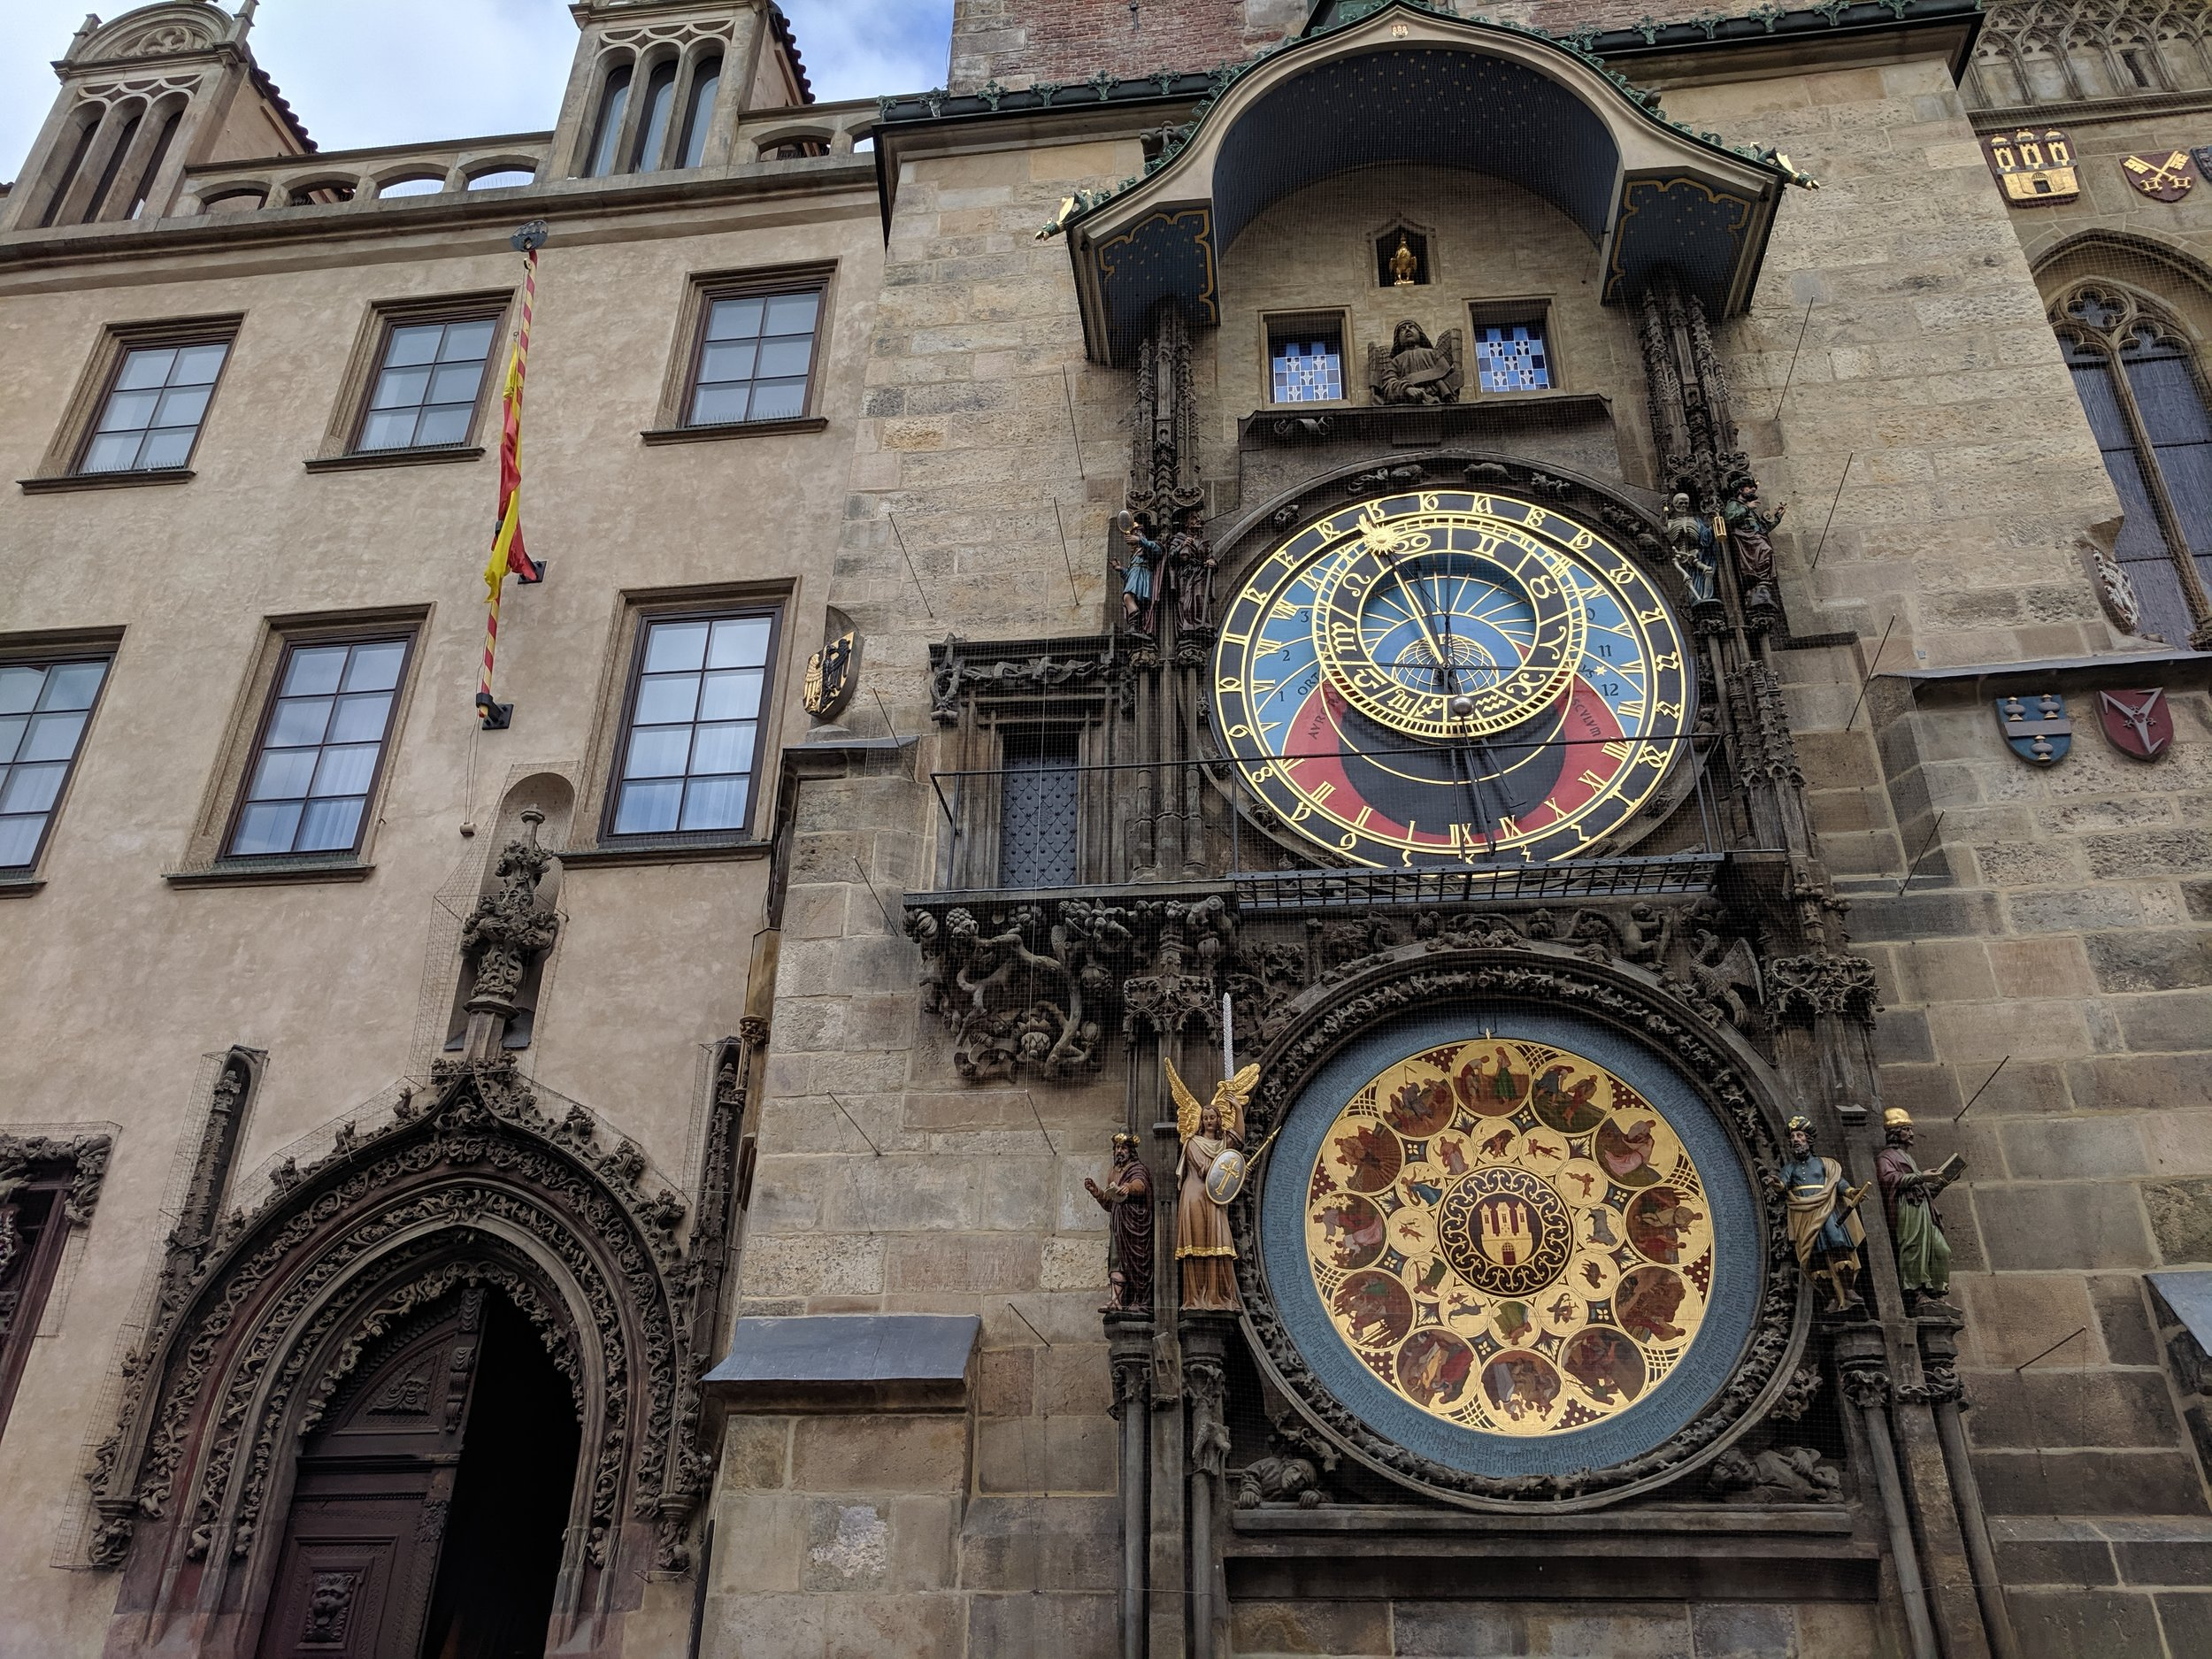 The 1410 astronomical clock chimes every hour and thousands crowd around to watch.